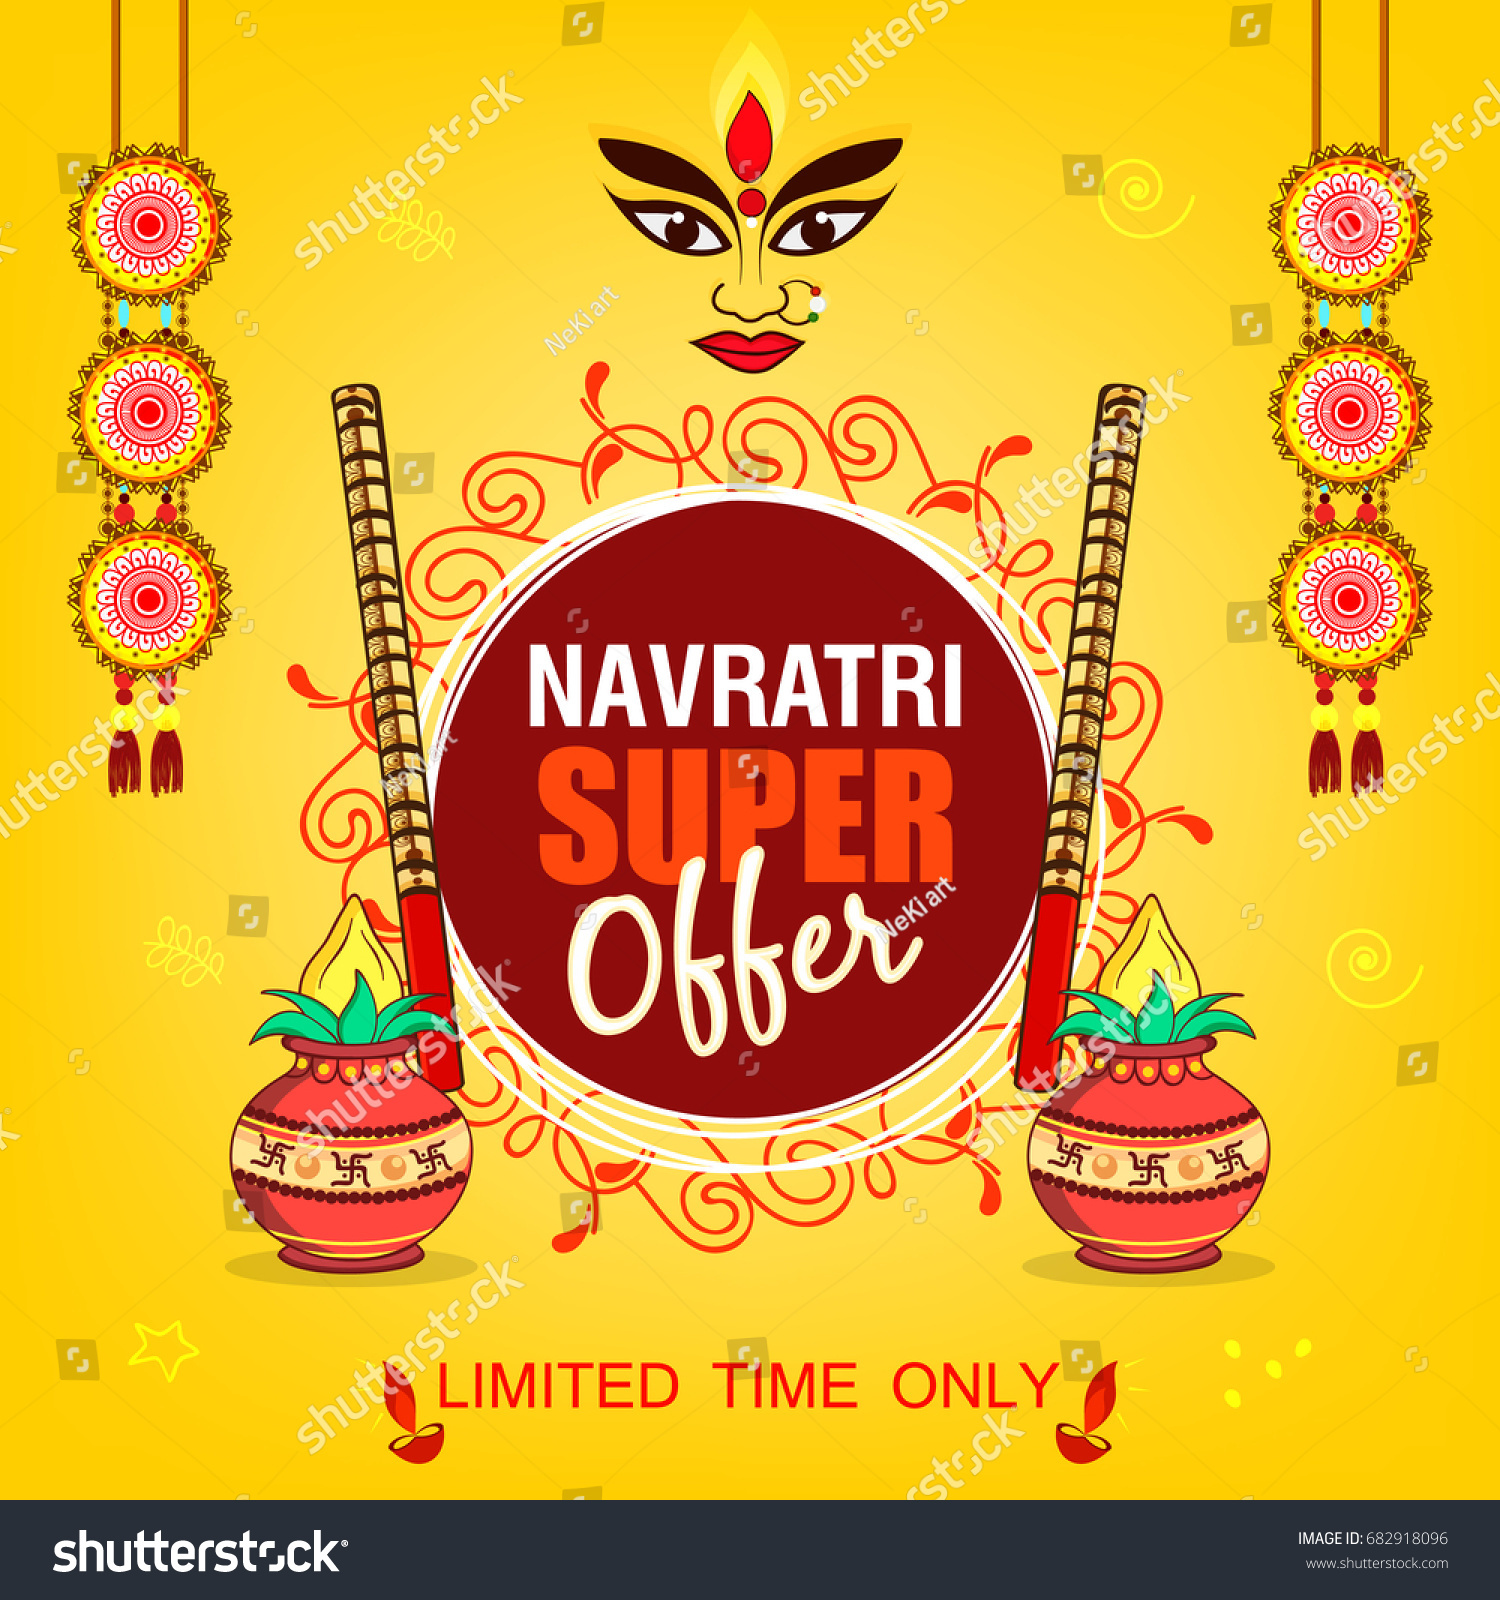 Beautiful floral frame super offer banner stock vector 682918096 beautiful floral frame for super offer banner design on the occassion of shubh navratri or durga kristyandbryce Image collections